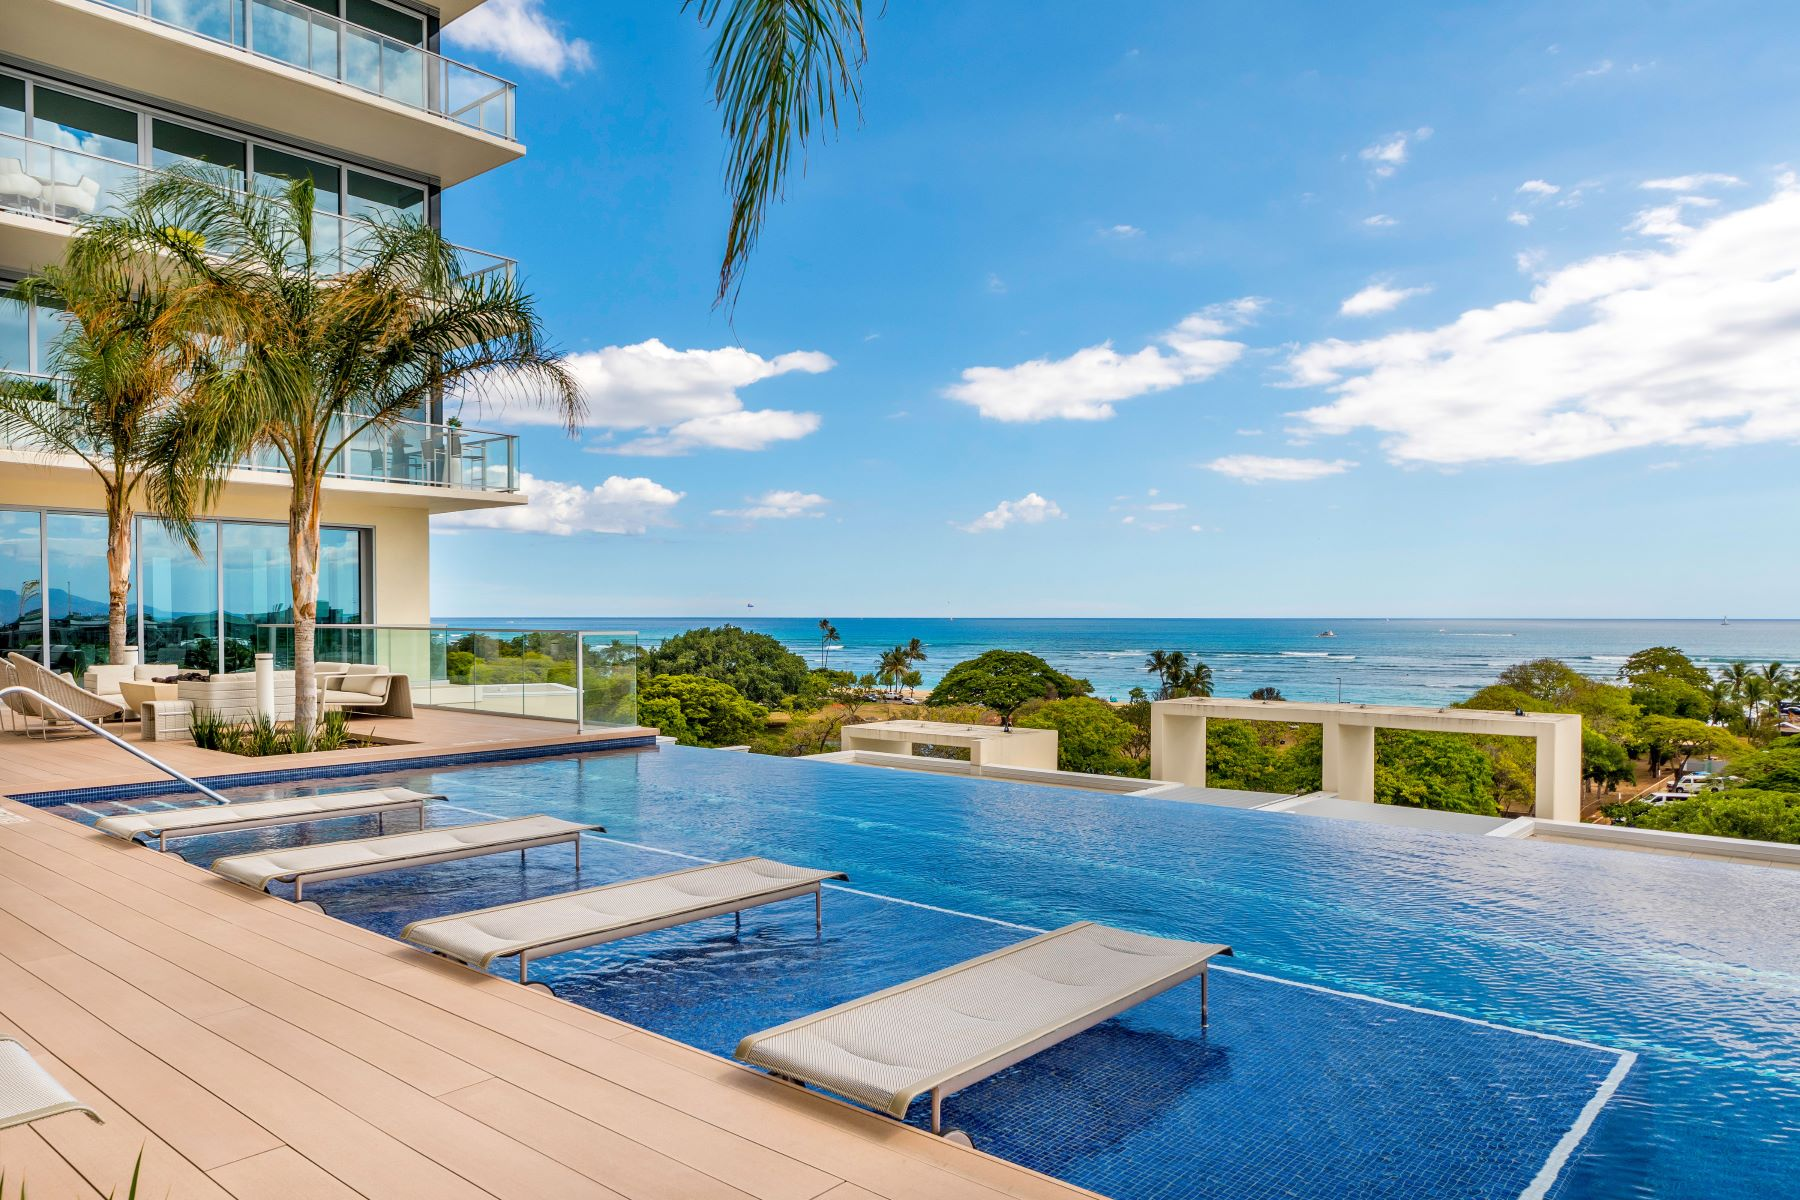 Condominiums 용 매매 에 Waiea, Luxury Condo, High Rise Condo, Ocean View, Kakaako 1118 Ala Moana Blvd #2206, Honolulu, 하와이 96814 미국